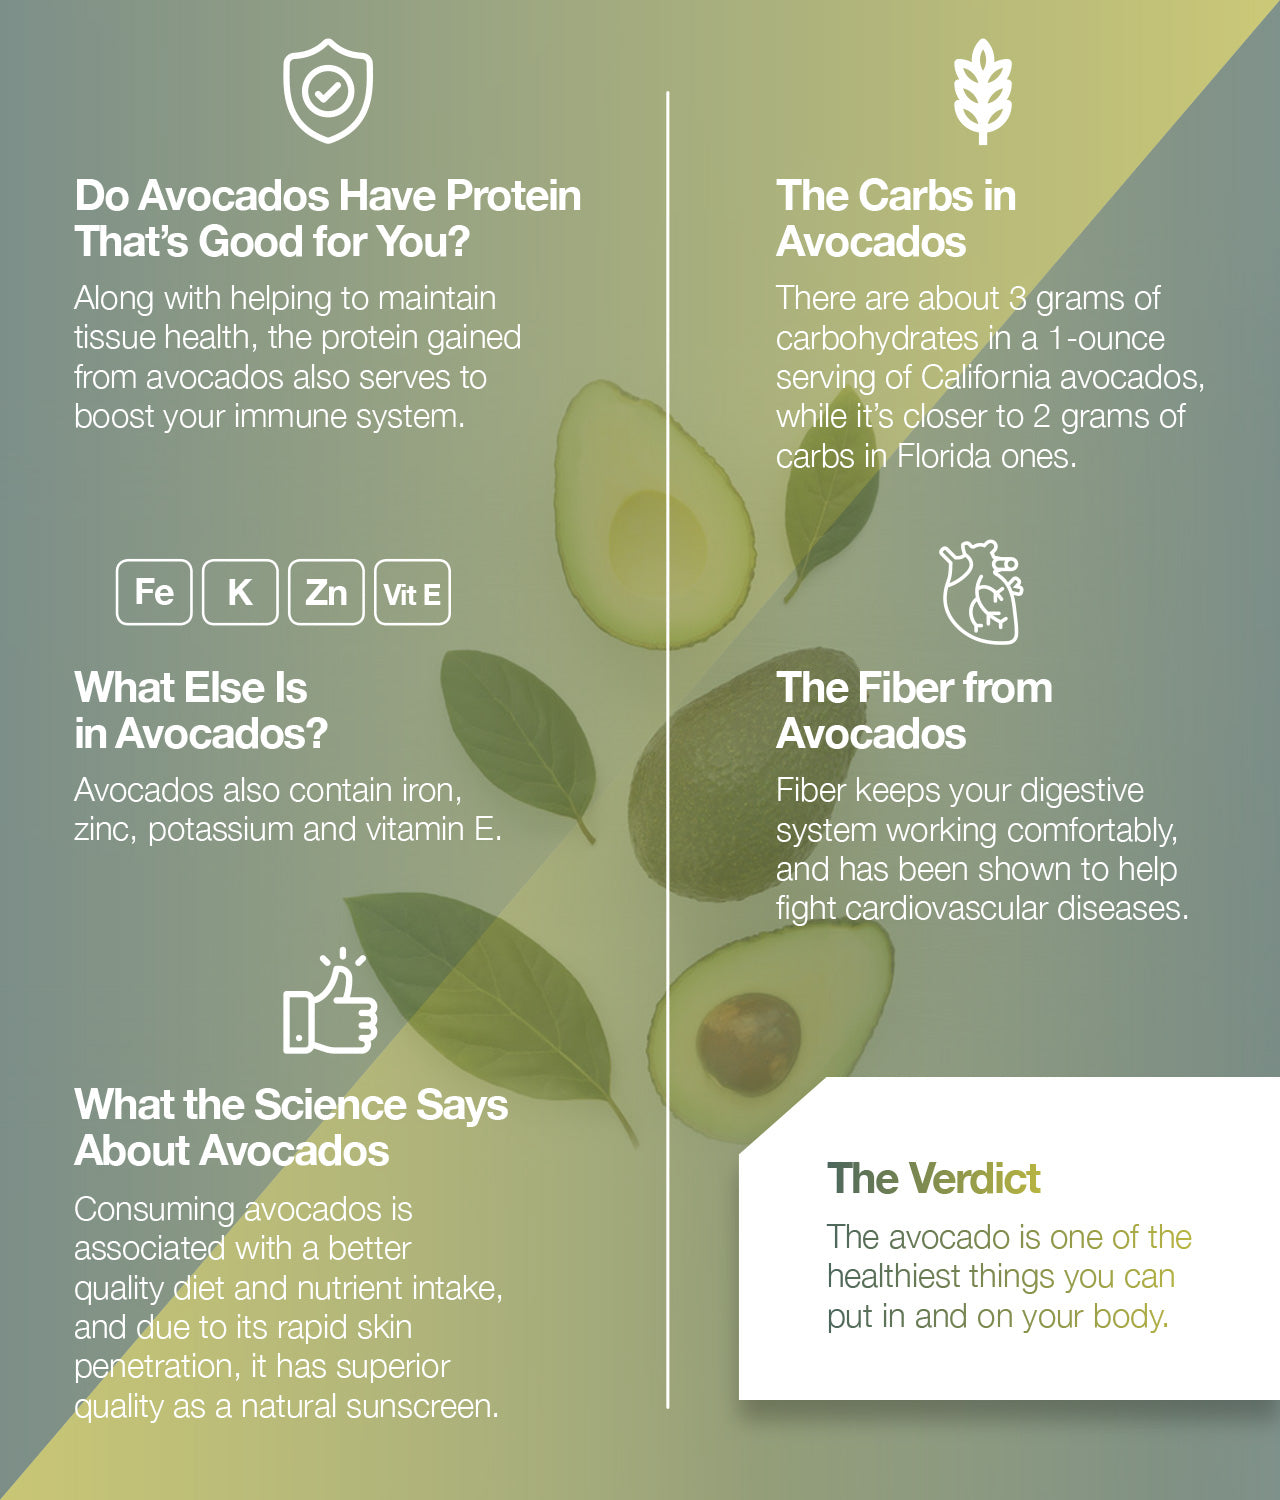 Do avocados have protein? Find out here